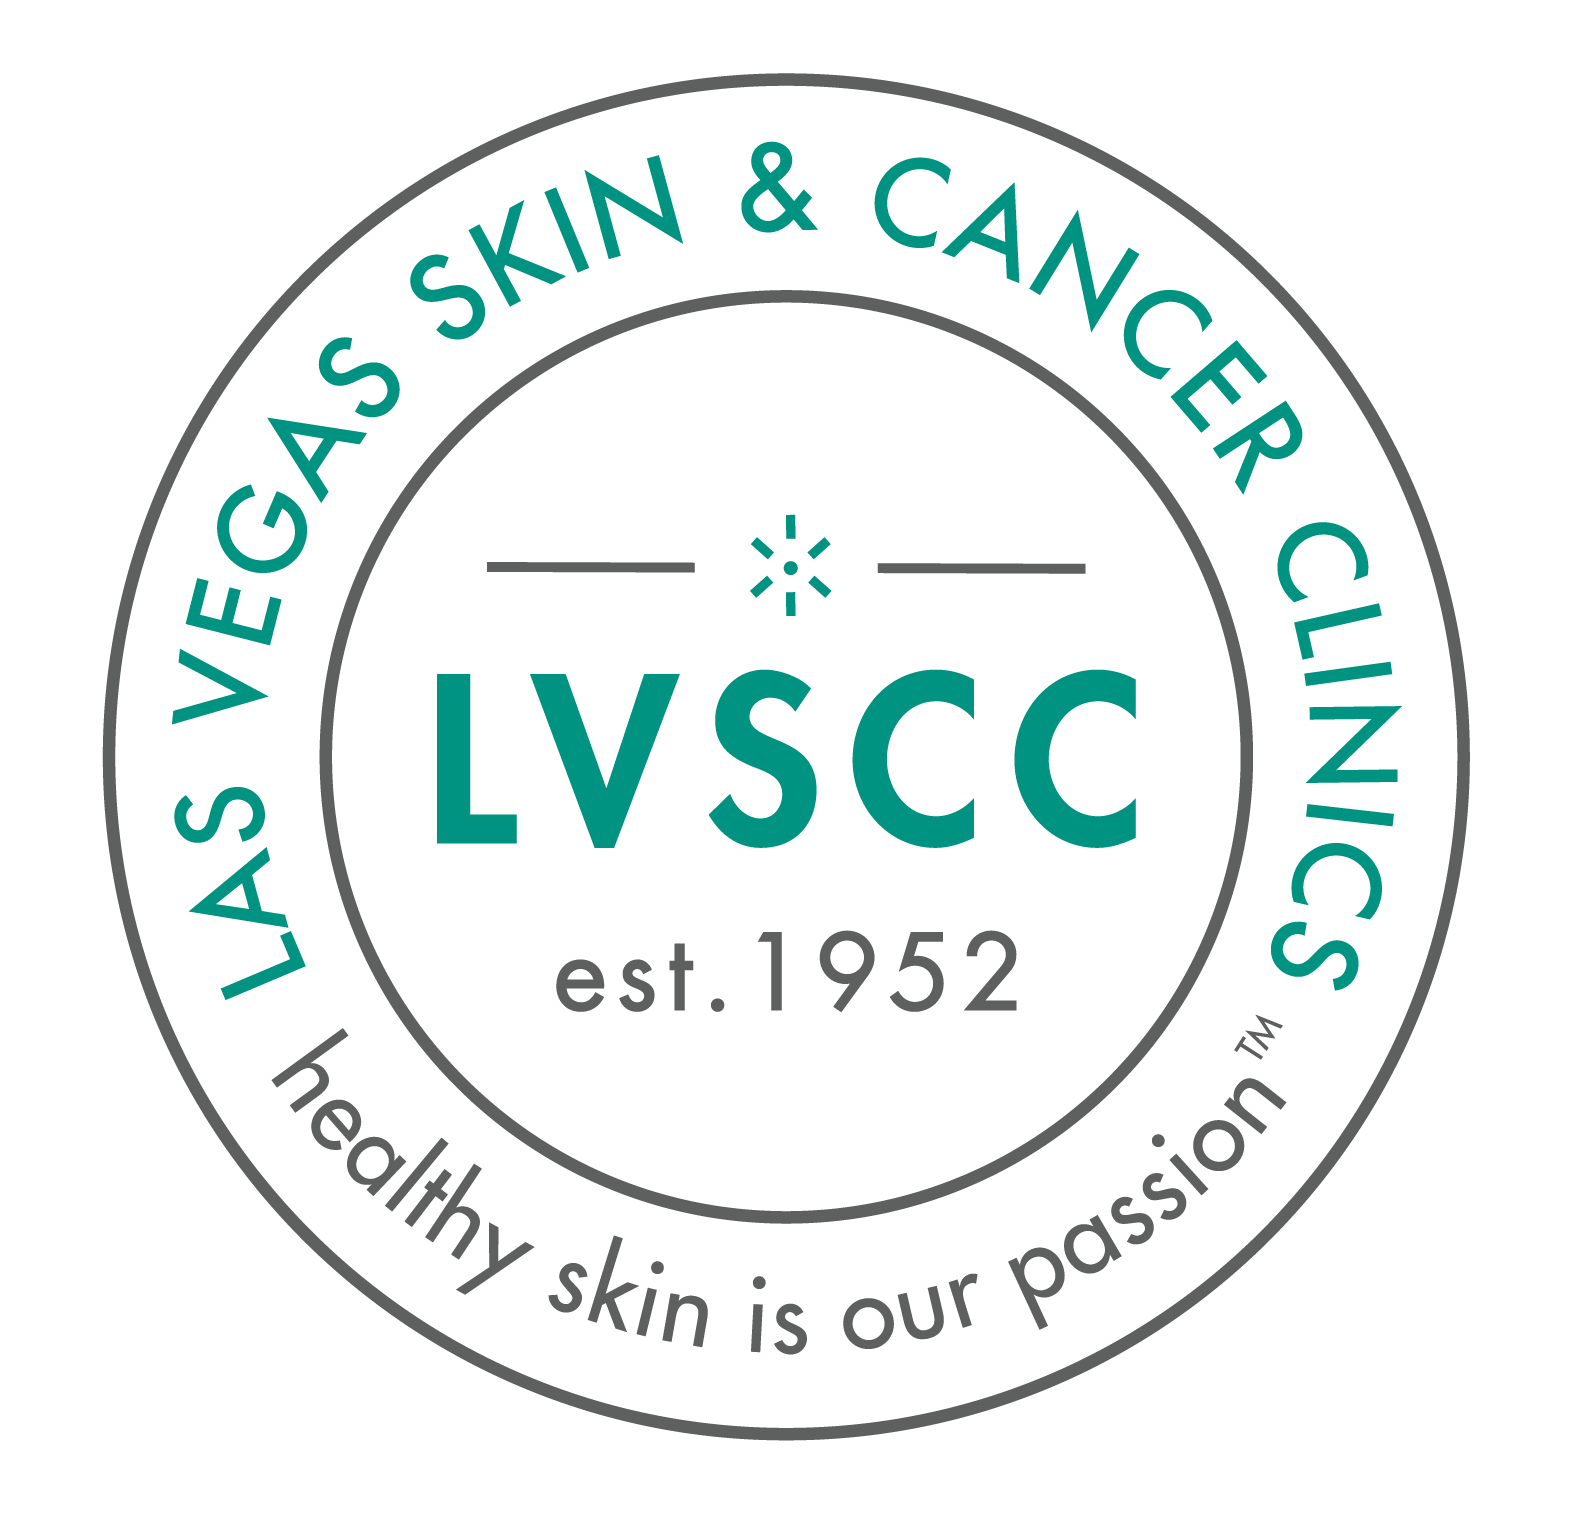 Las Vegas Skin & Cancer South Rancho, a Top Dermatologist in Las Vegas, NV Offers High-Quality Eczema Treatments